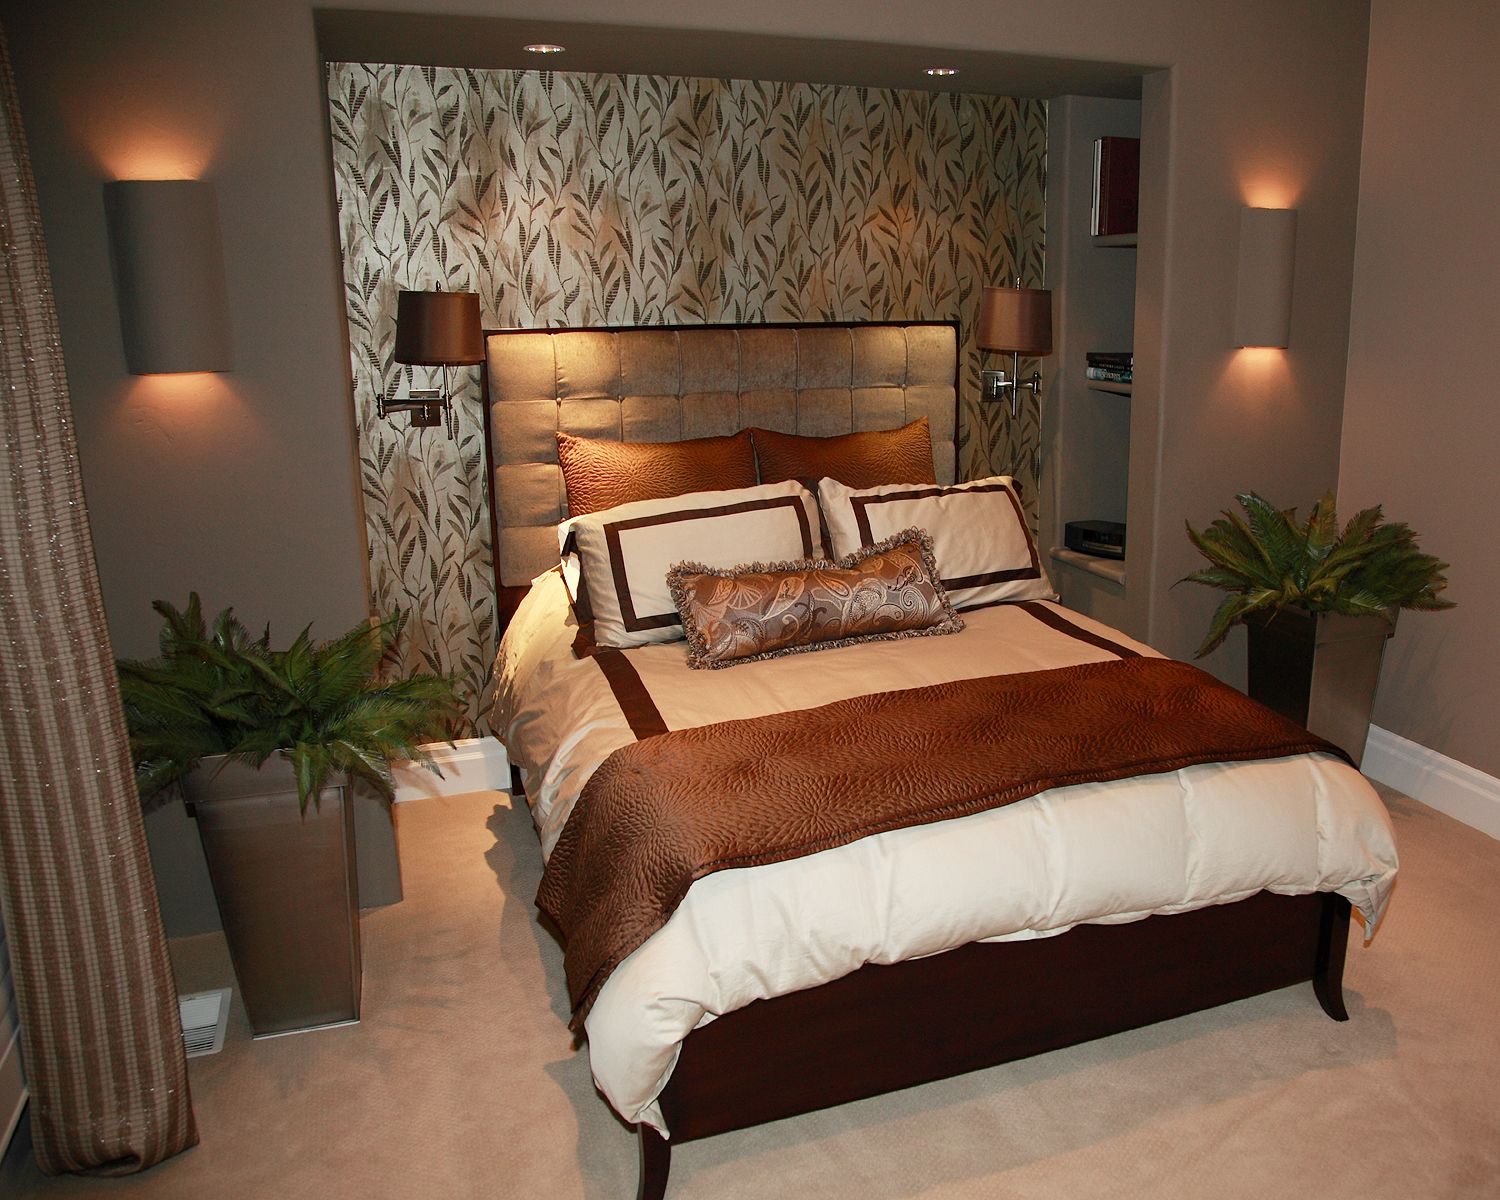 Master bedroom feature wall  feature wall with niche in master bedroom  Bedroom  Pinterest